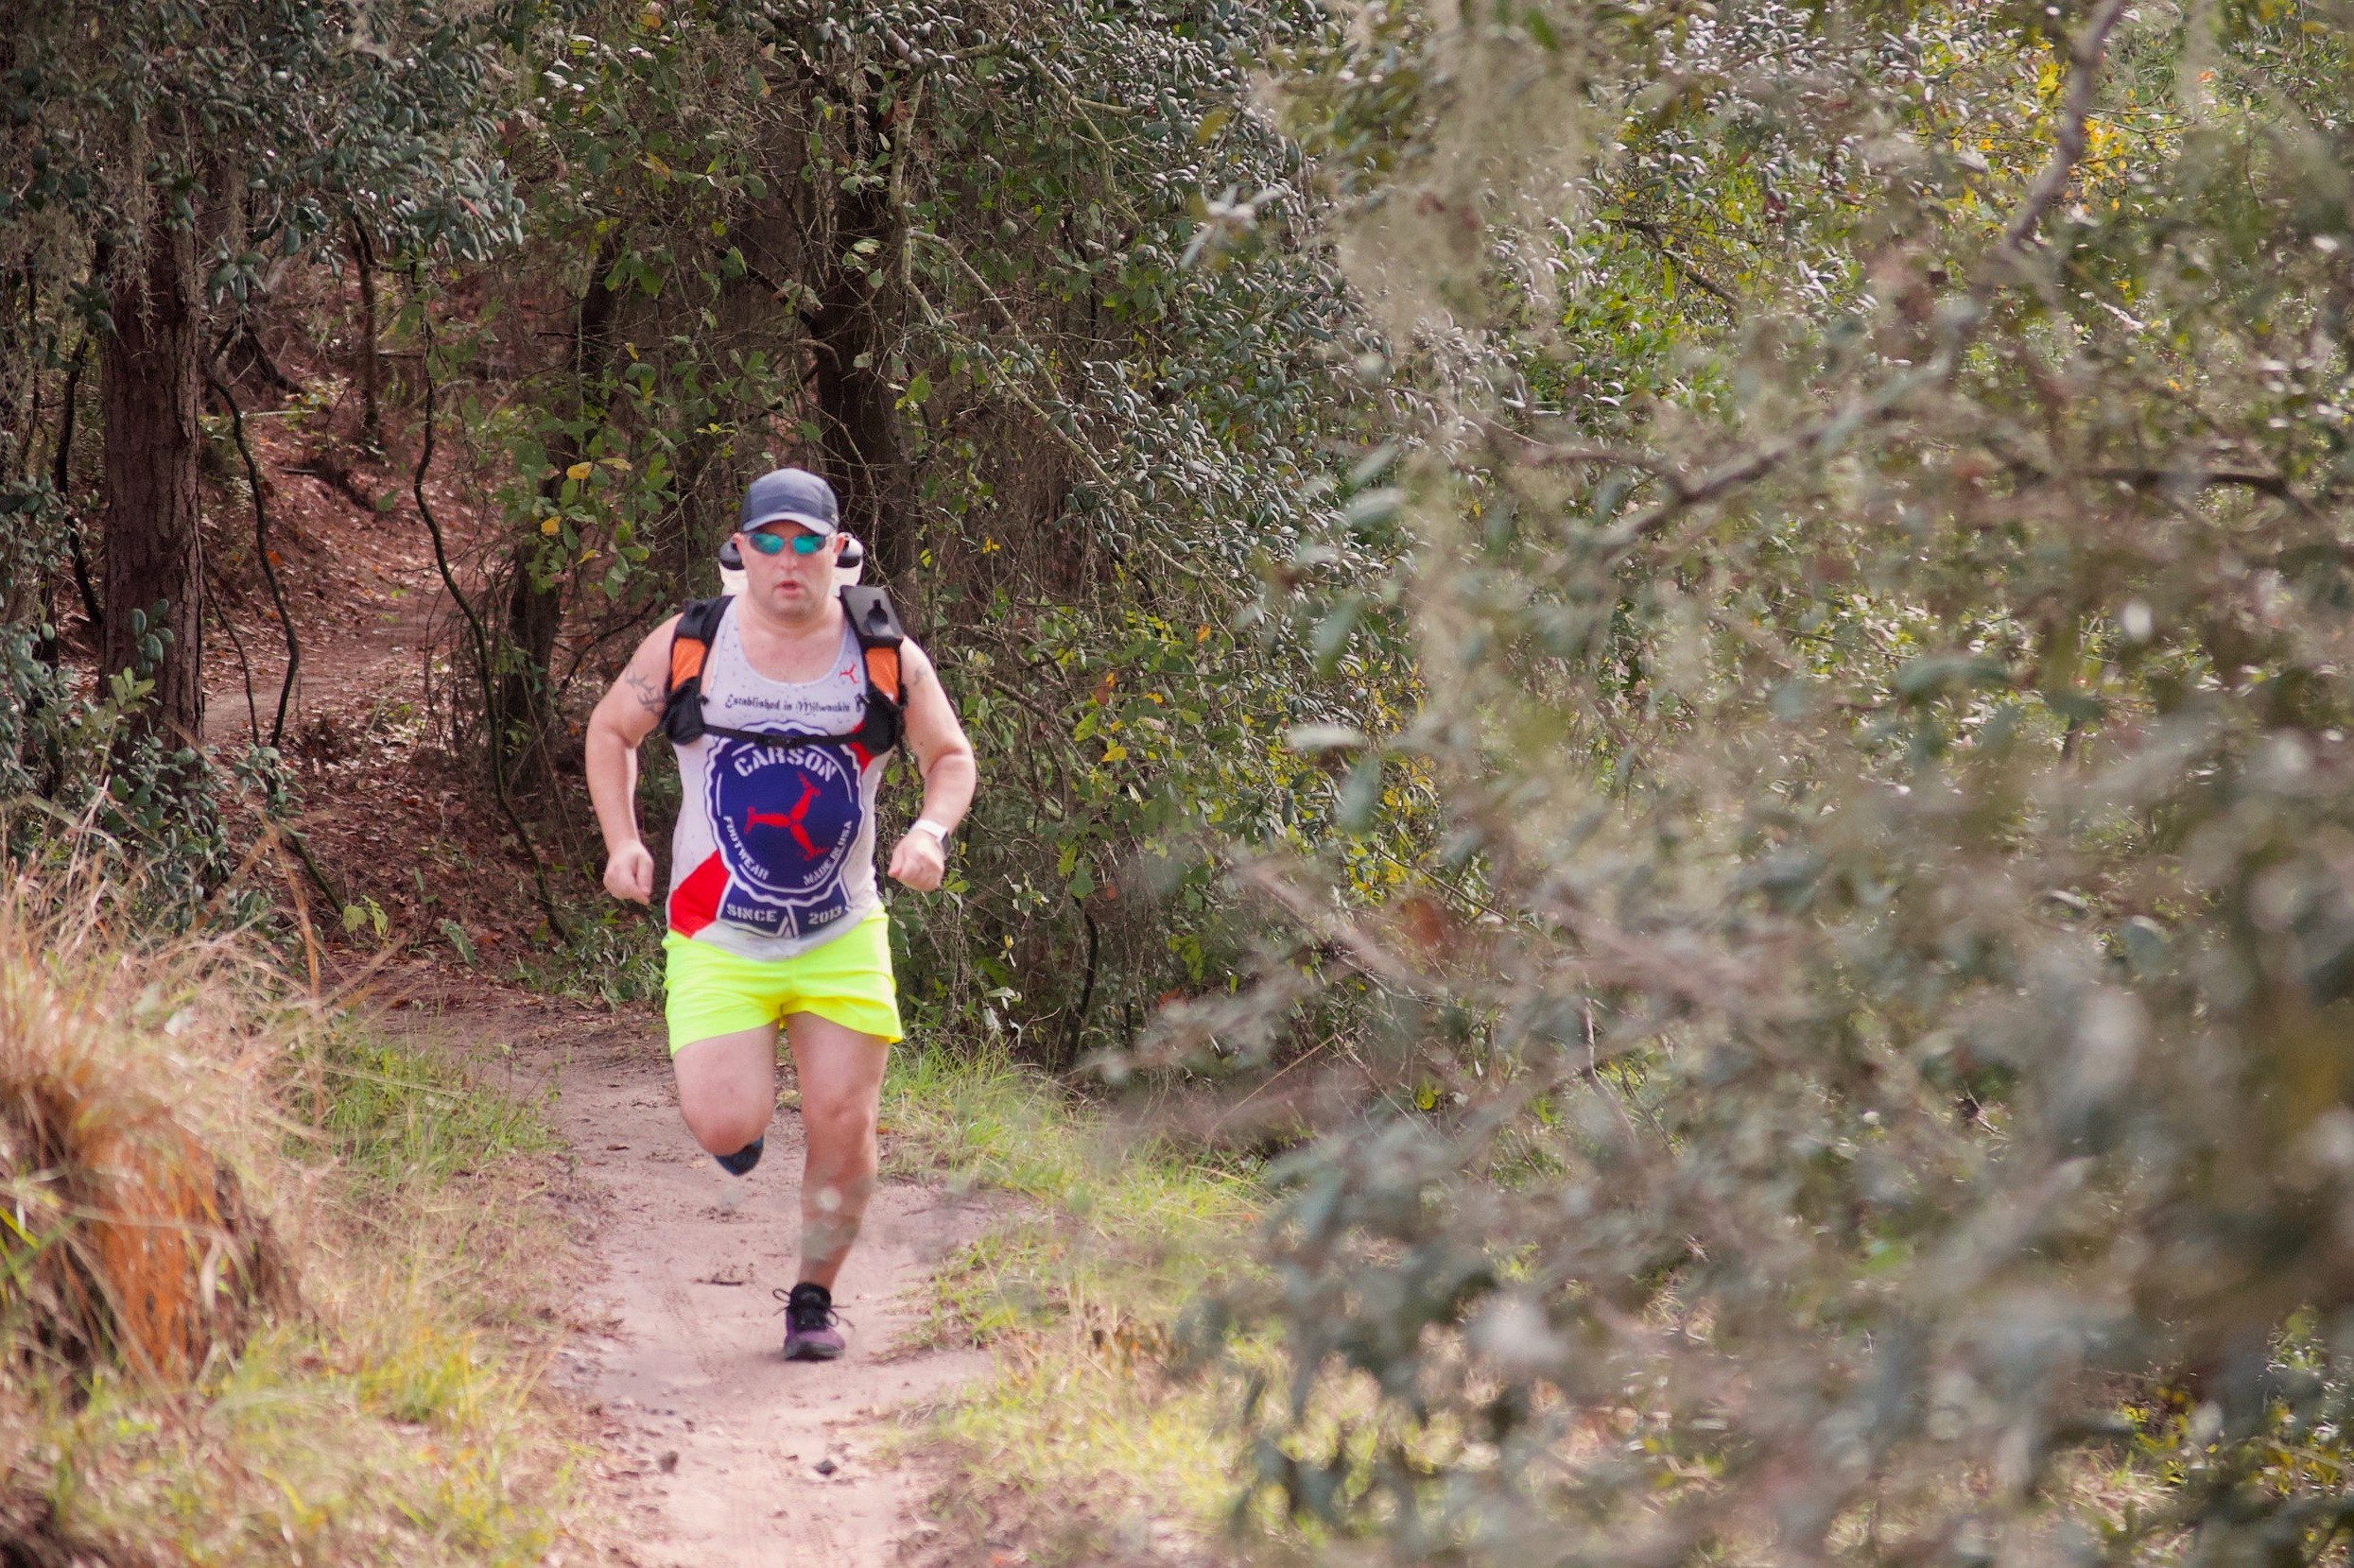 Cory Scotti @mudrocksandmountaintops  Being over weight and stressed out brought Cory back to his passion of discovering new trails. In need of a change he started running the trails he loved as a kid. Now he finds himself playing in the dirt whenever and wherever possible.